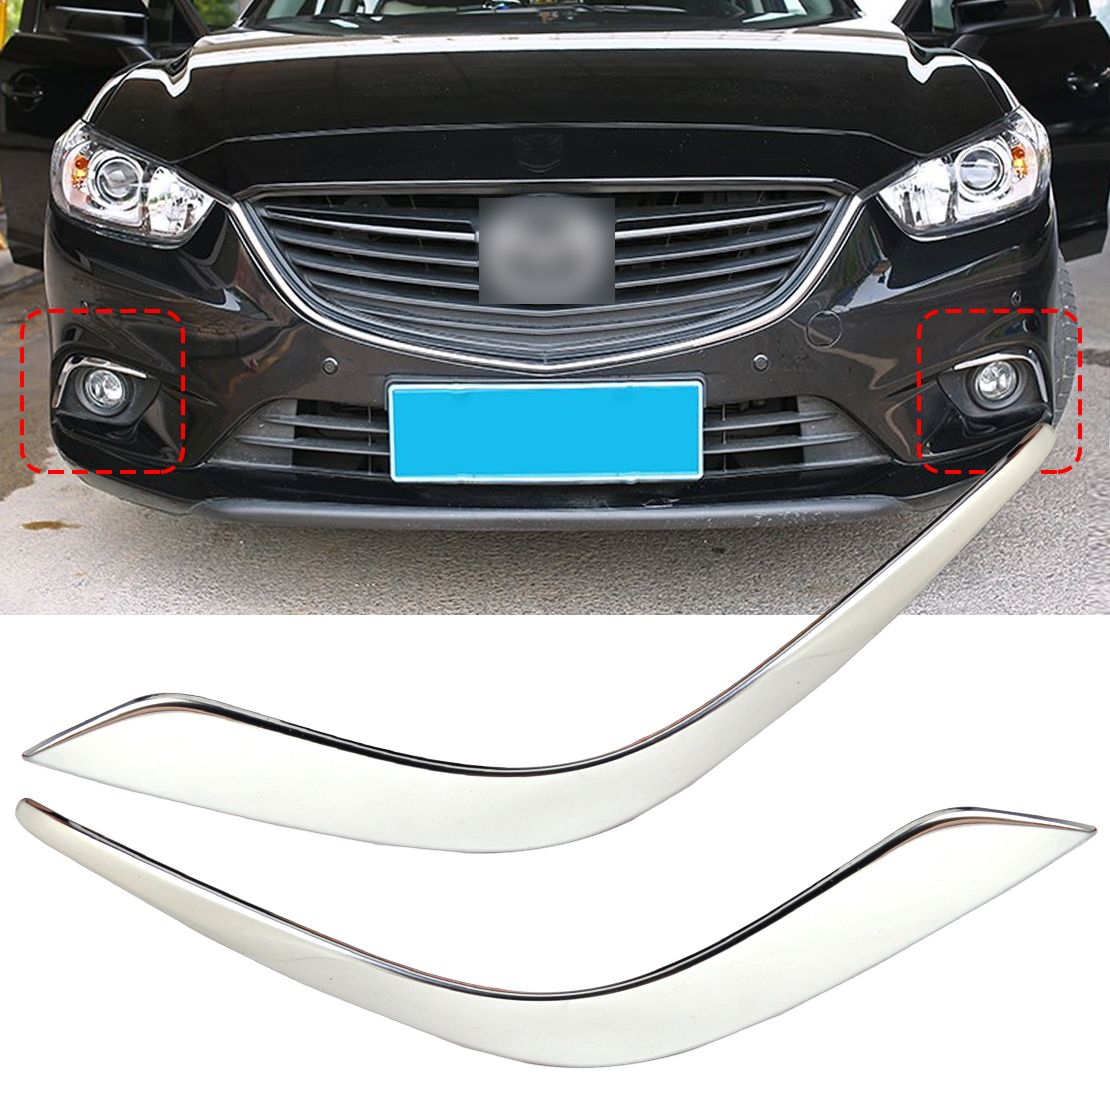 Dwcx car styling chrome plated fog light lamp eyebrow cover trim fit for mazda atenza 2013